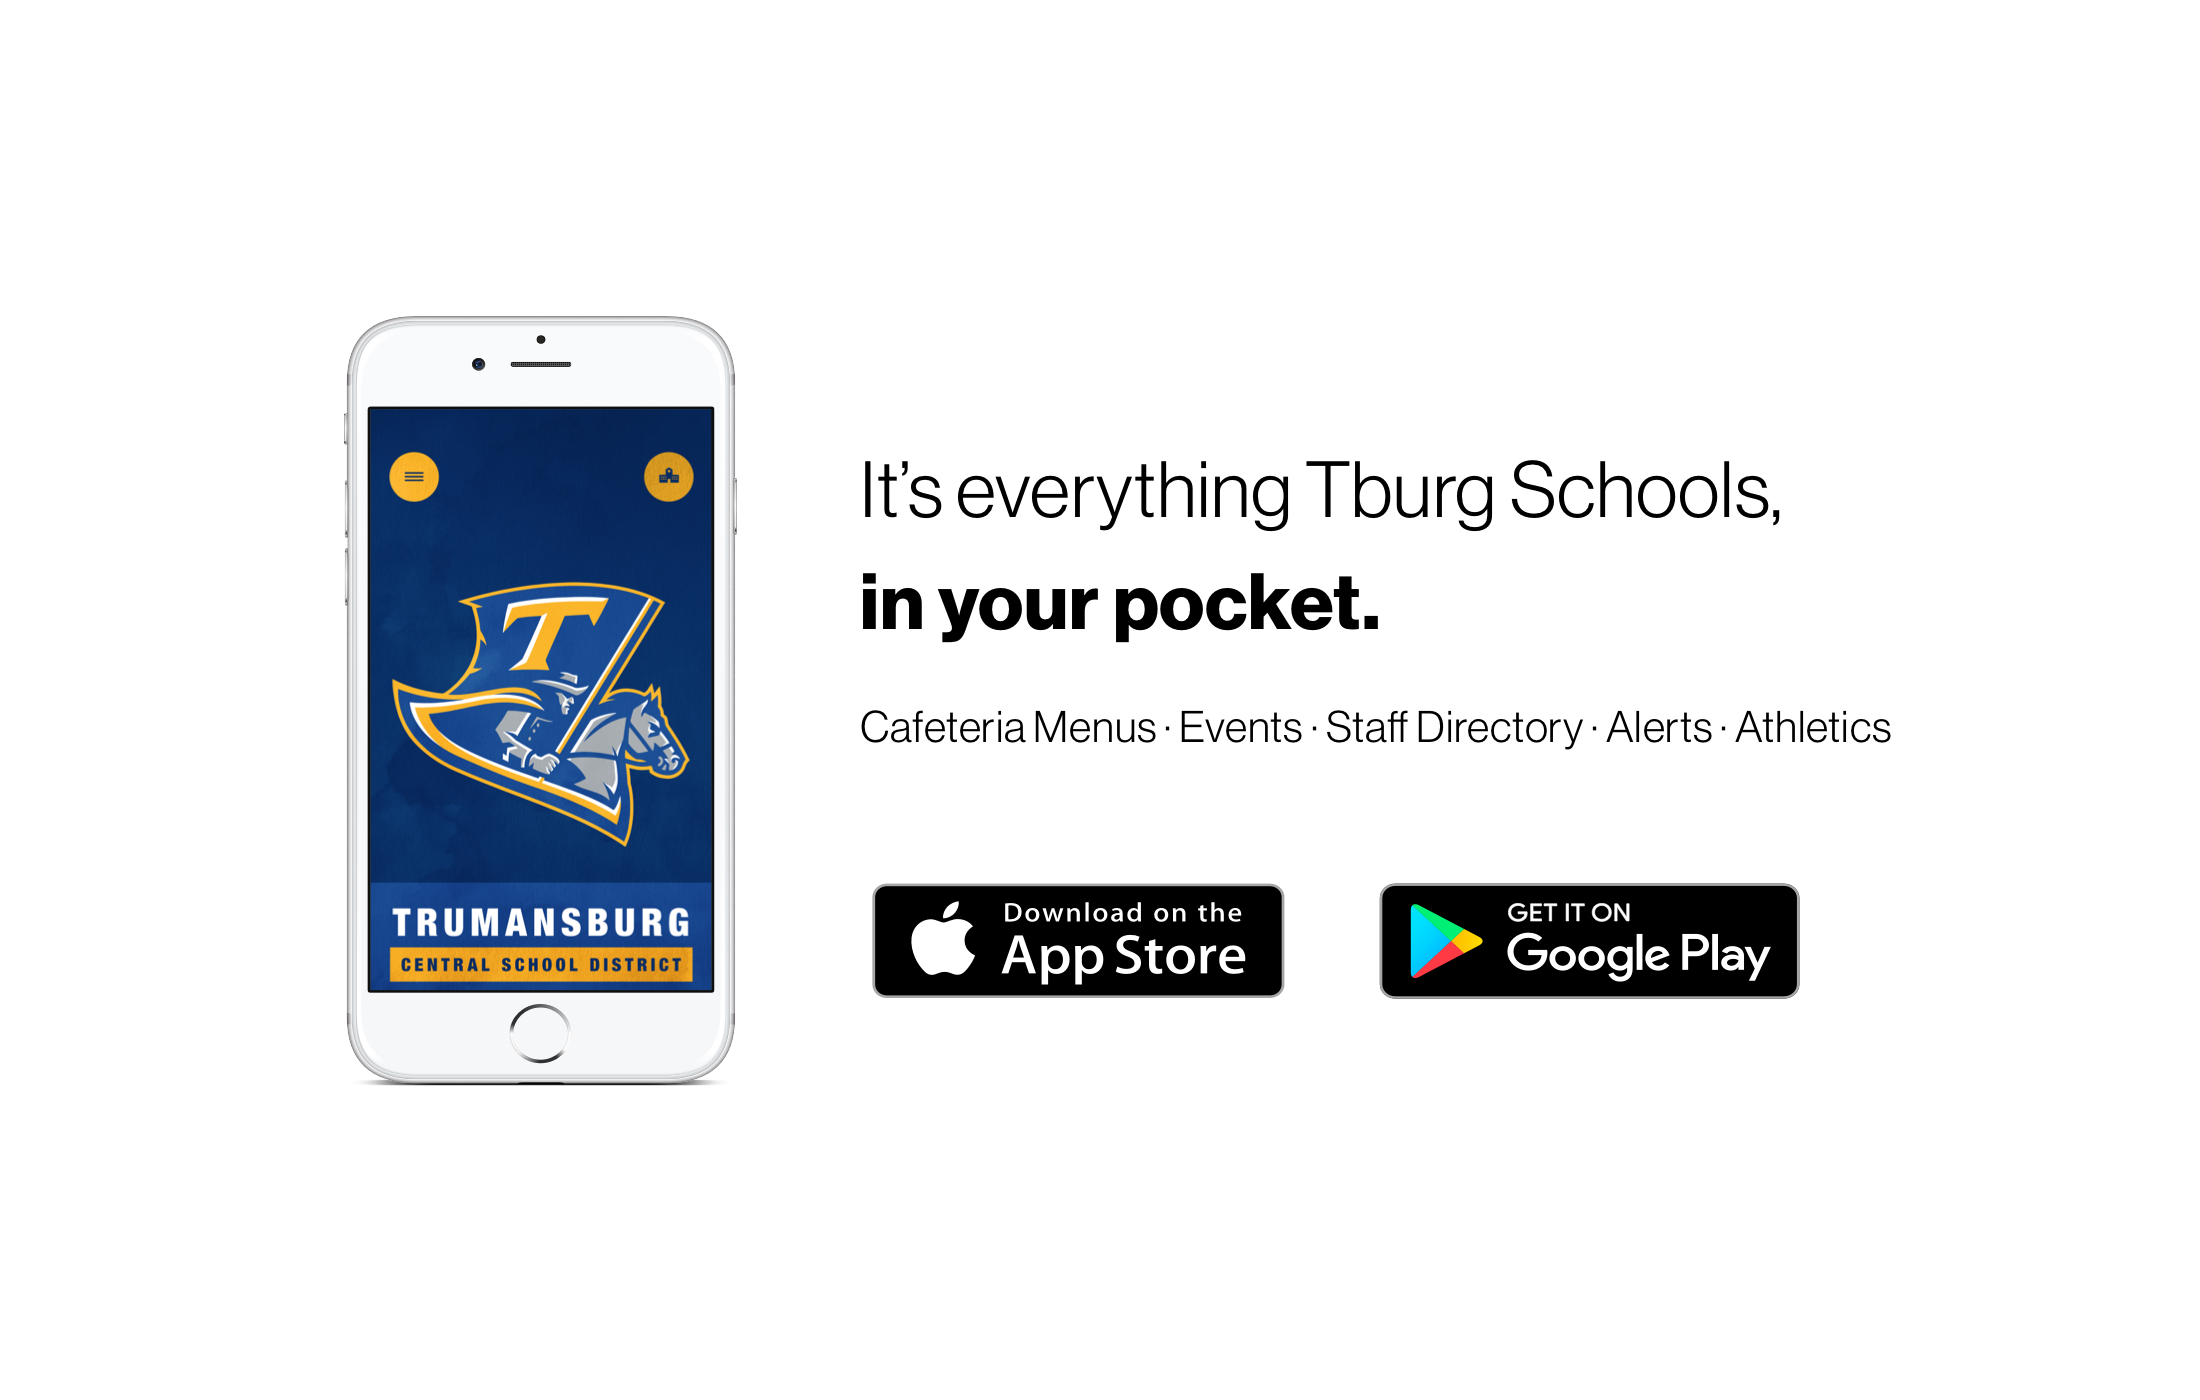 It's everything Tburg Schools in your pocket